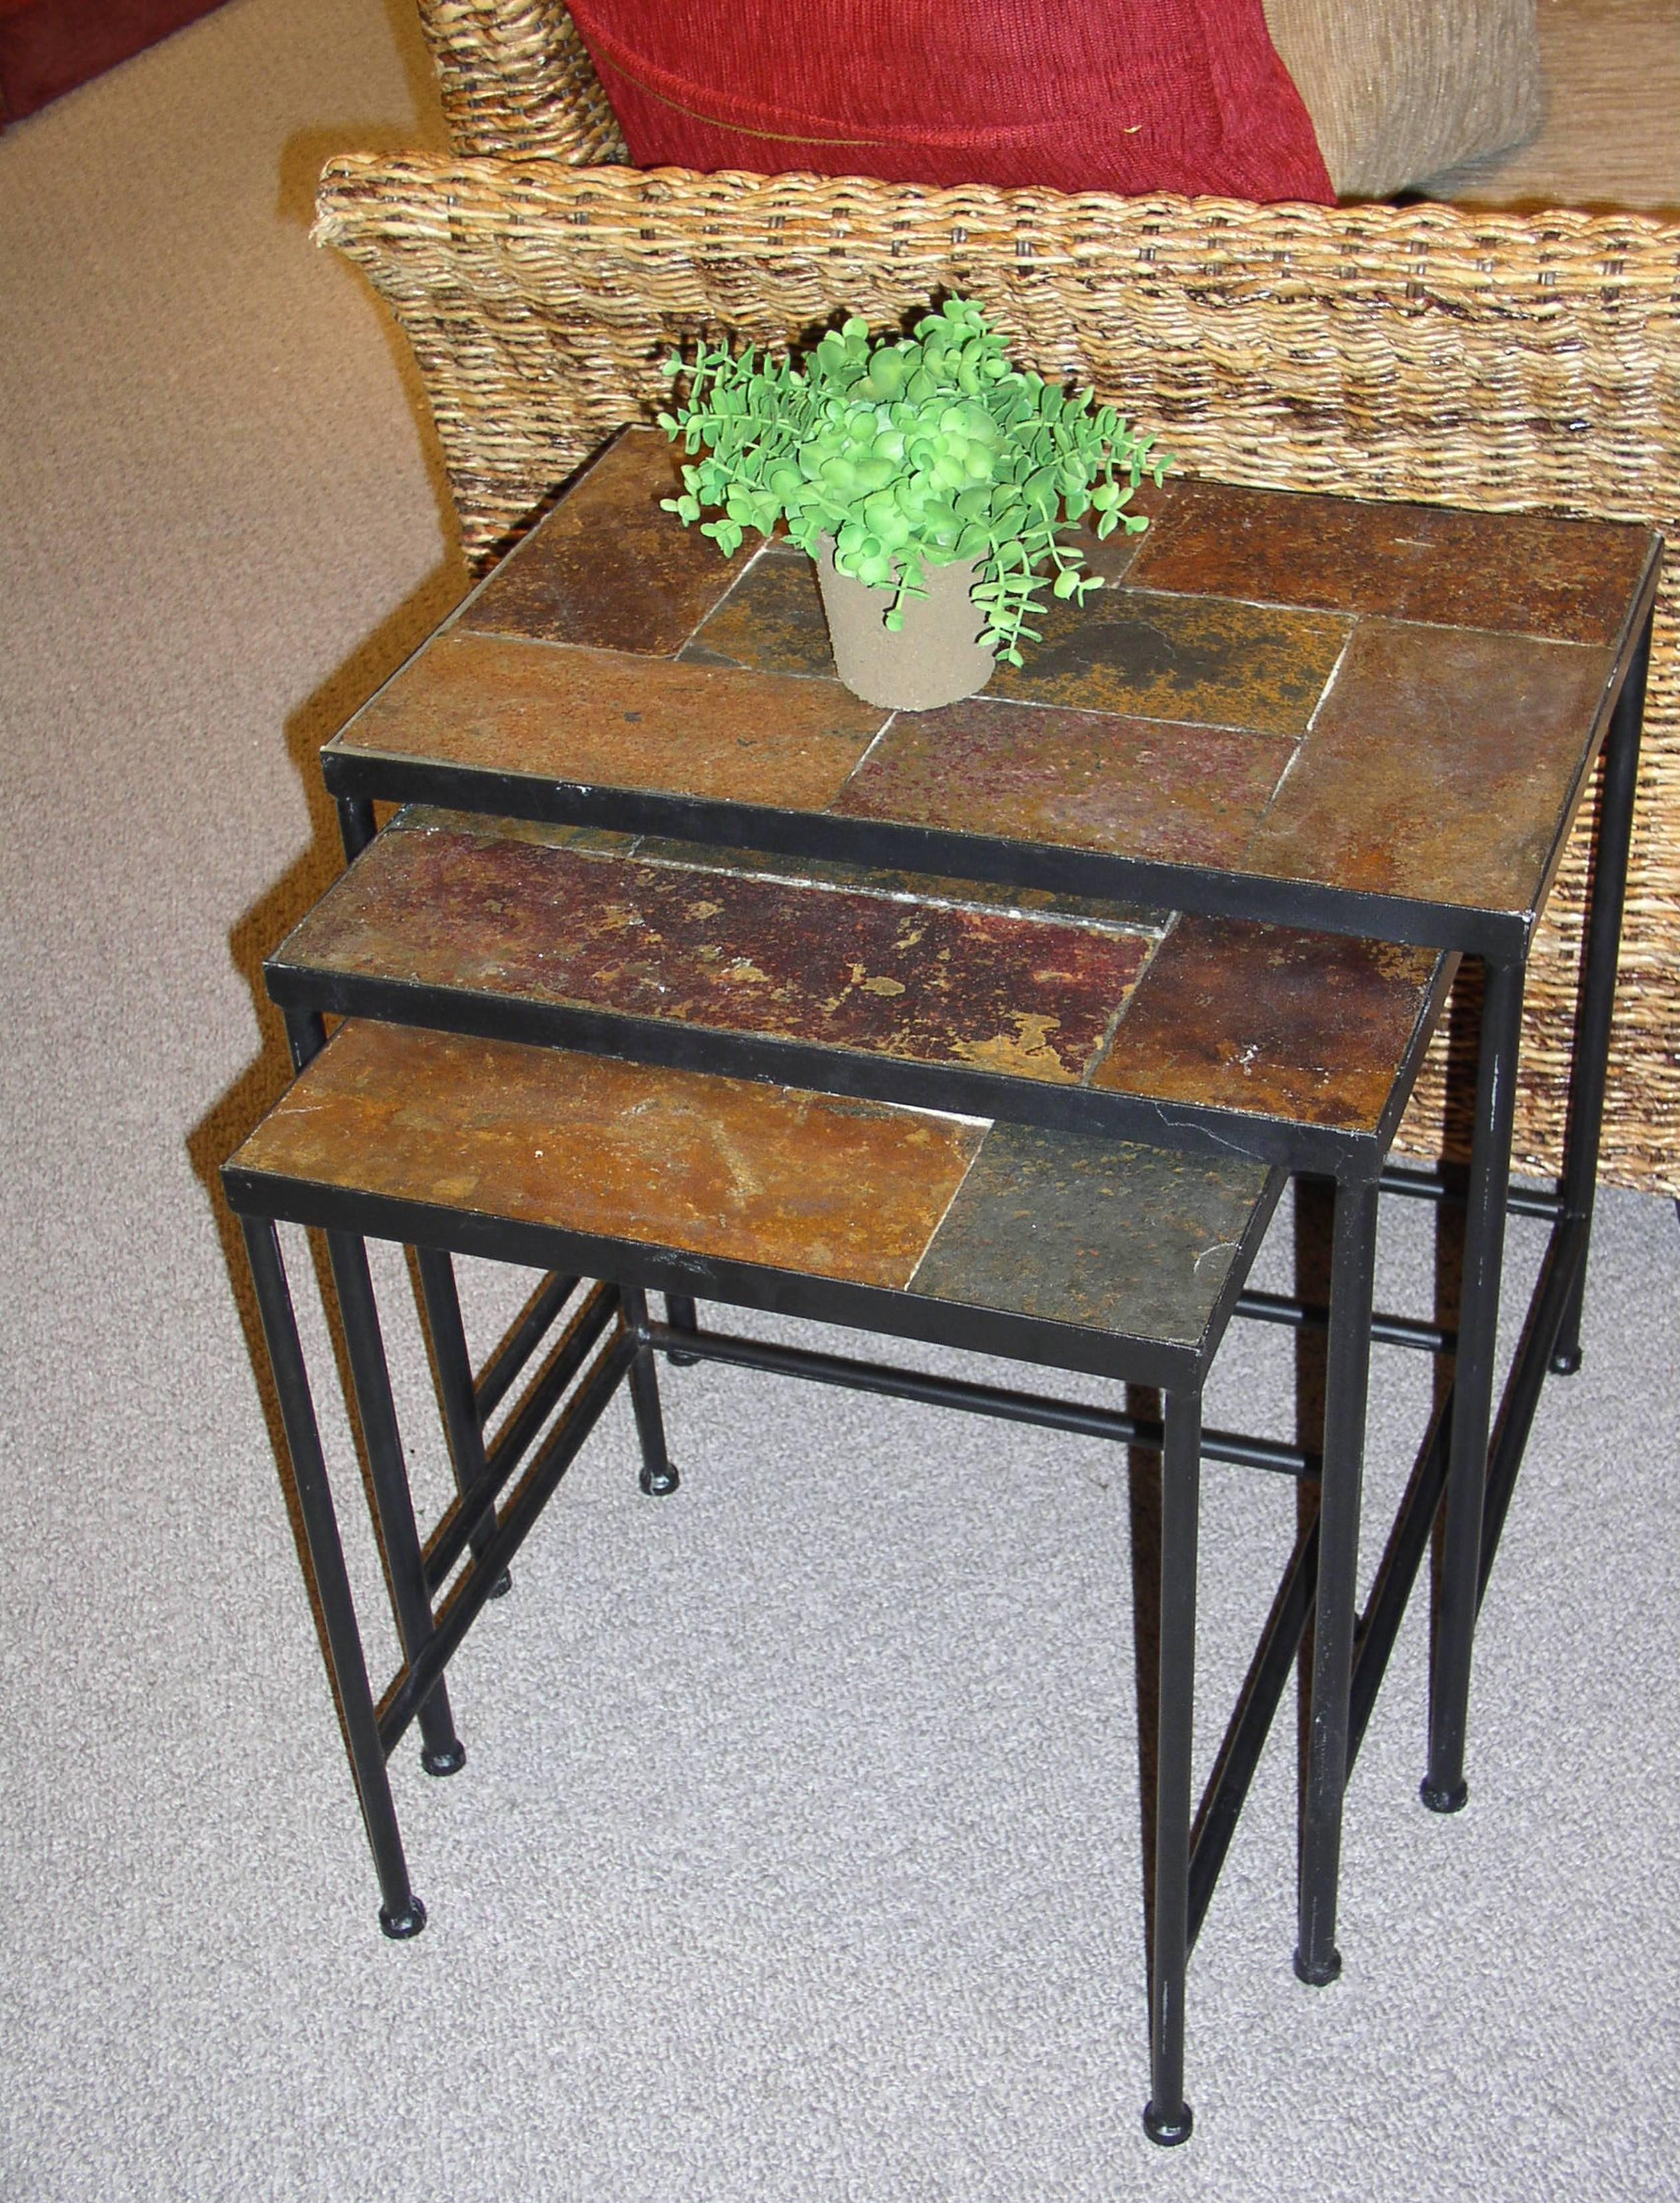 4D Concepts 3 Piece Nesting Tables W/ Slate Tops In Black Metal Intended For Slate Sofa Tables (View 8 of 20)